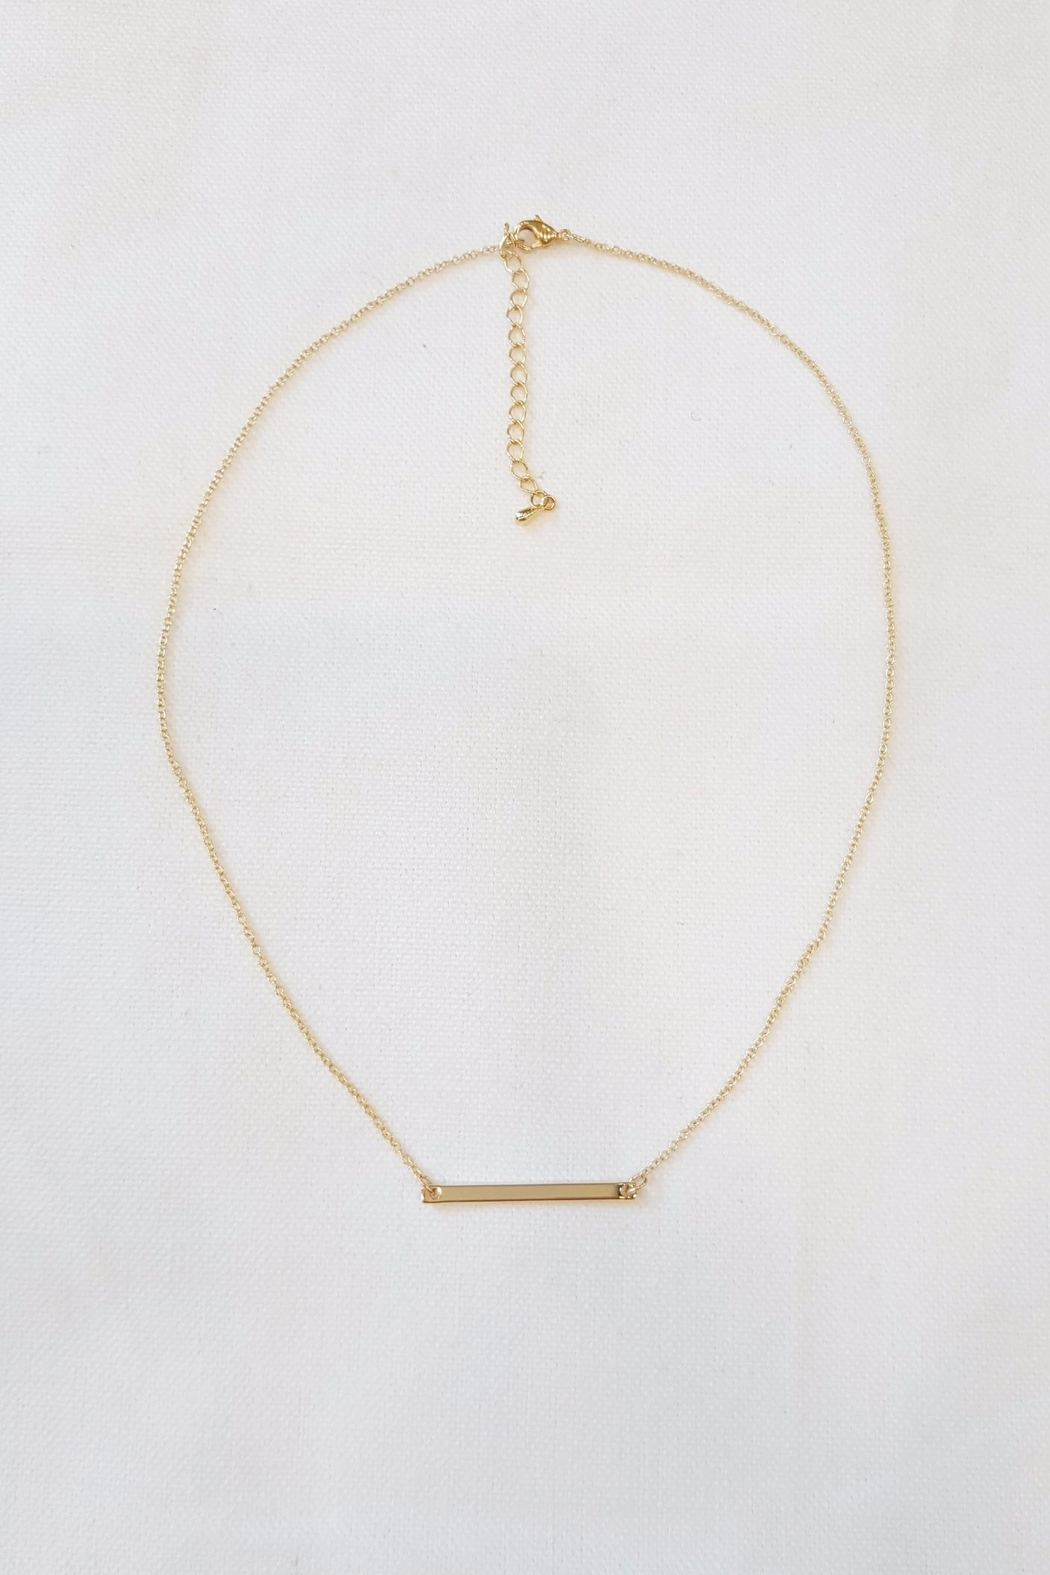 Simply Chic Gold Bar Necklace - Main Image